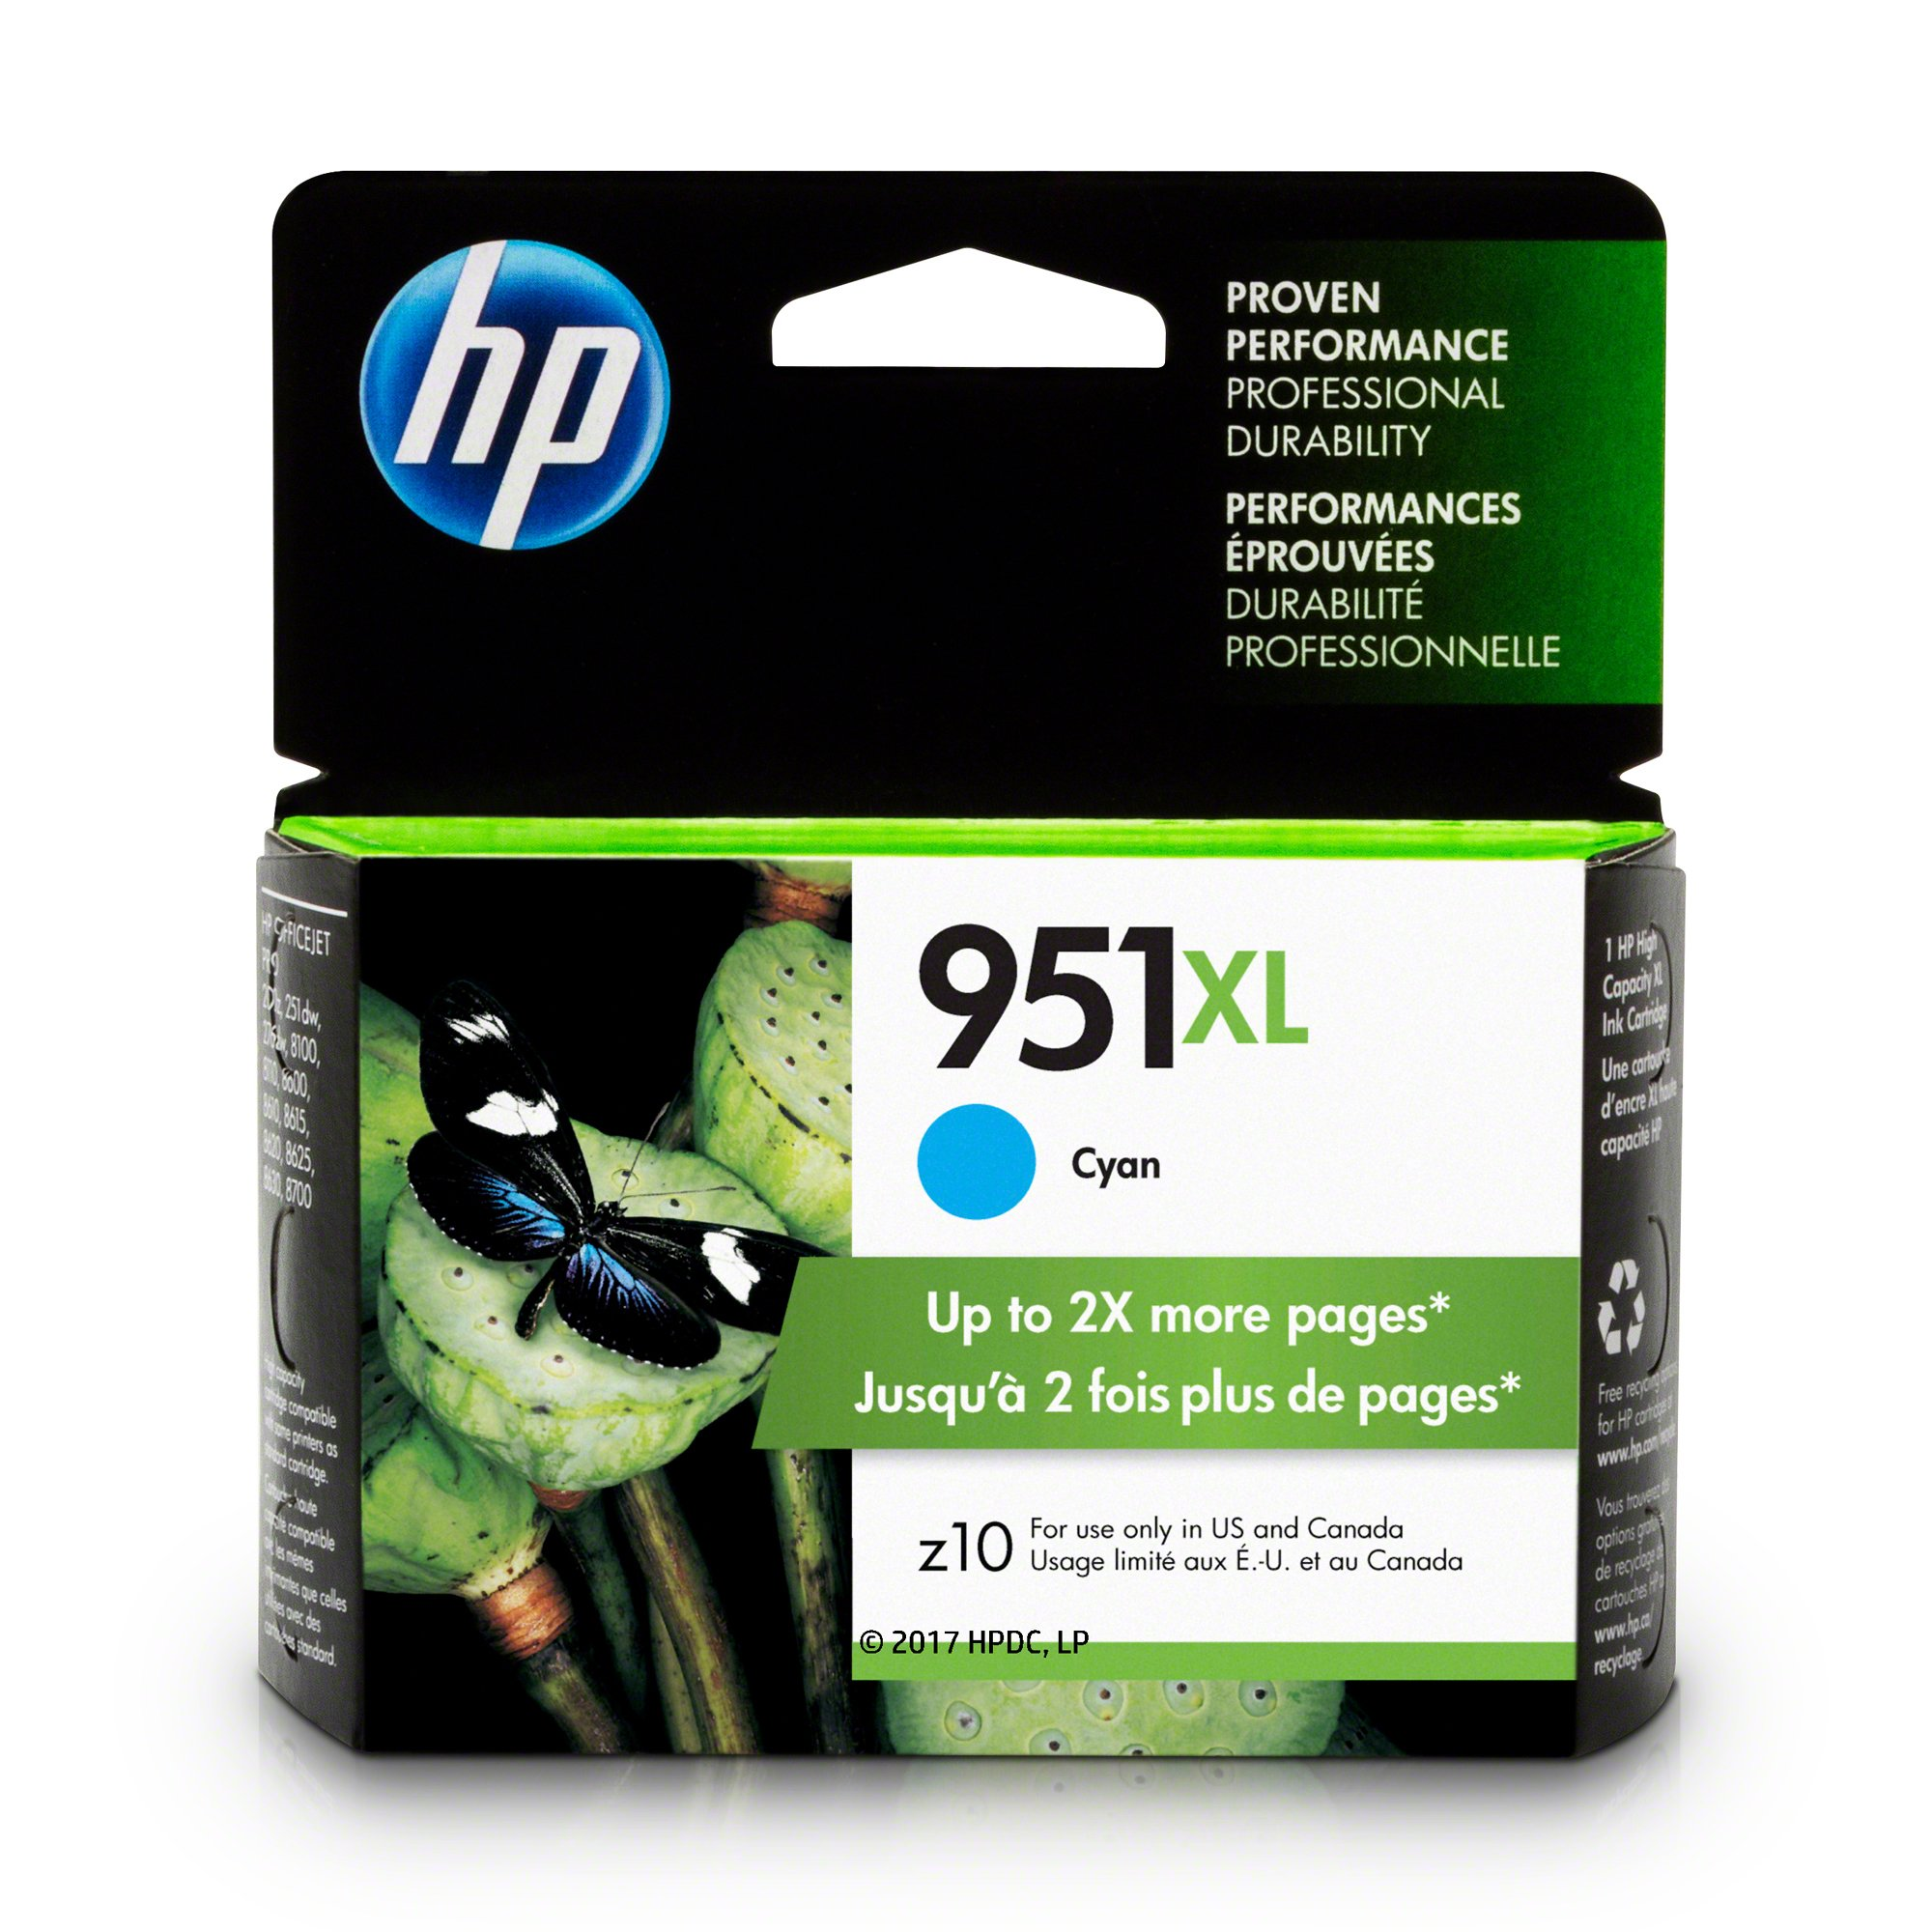 HP CN046AN#140 951XL Ink Cartridge, Cyan High Yield (CN046AN) for Officejet Pro 251, 276, 8100, 8600, 8610, 8620, 8625, 8630